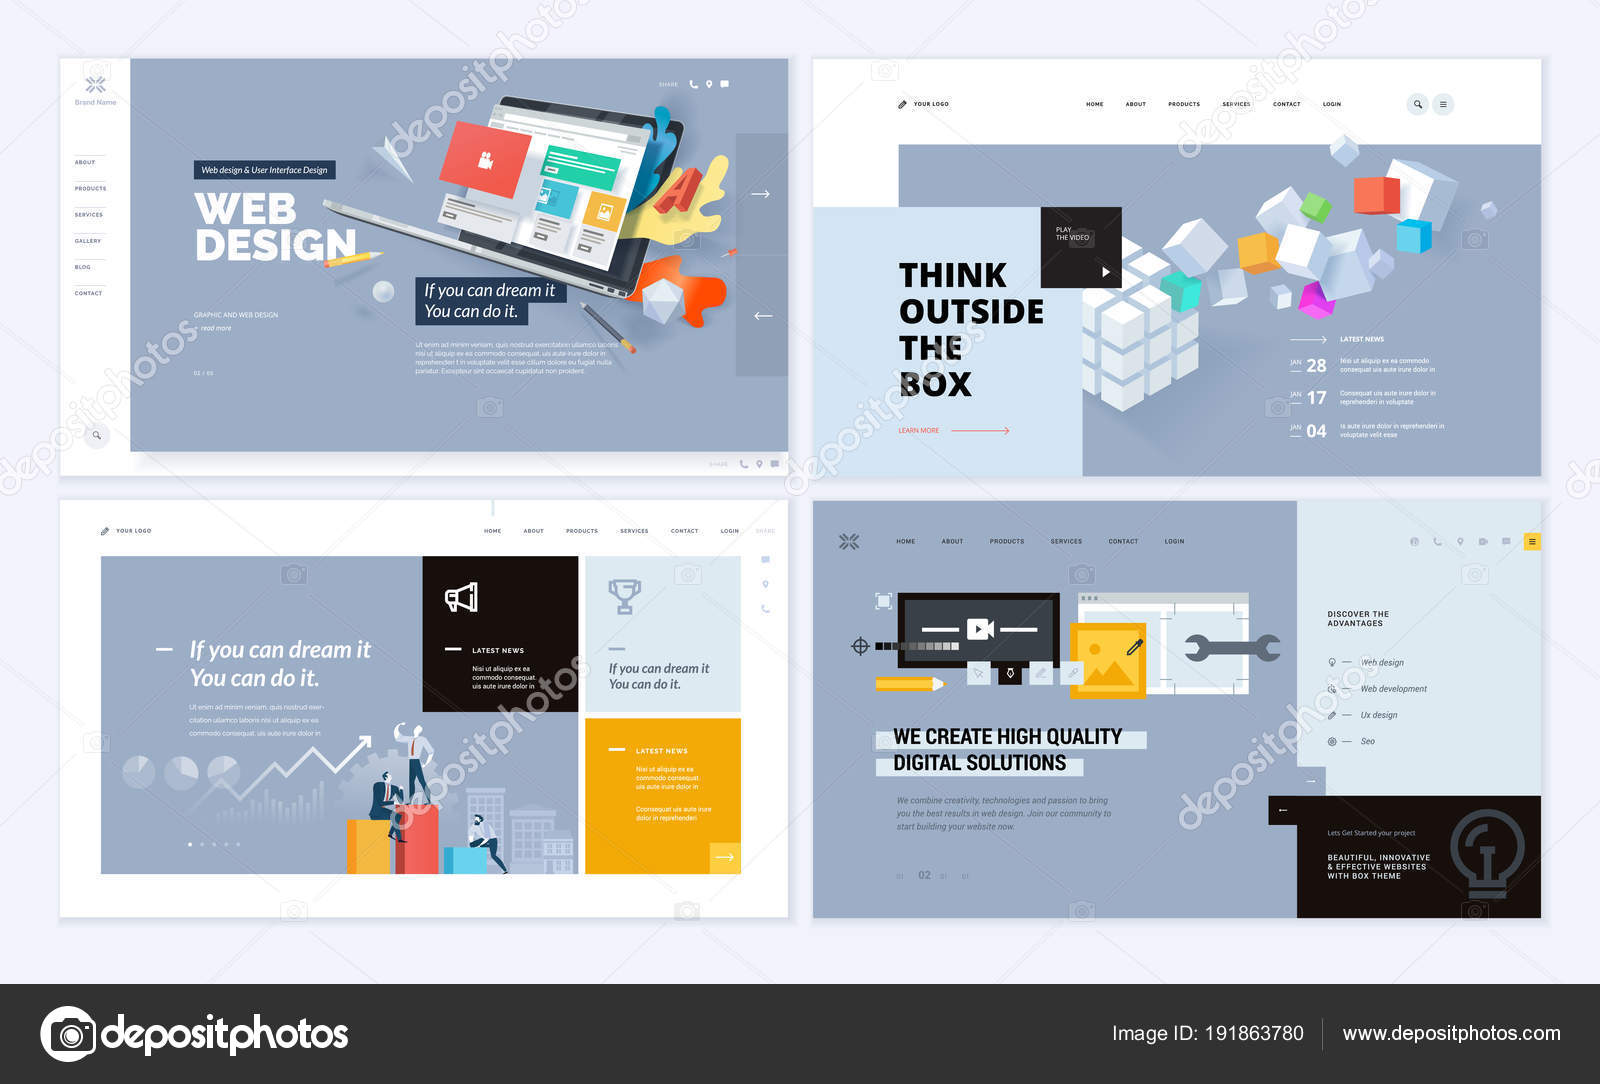 17/02/2021· 25 photography website templates for professional and hobby photographers 2021. Set Creative Website Template Designs Vector Illustration Concepts Website Mobile Stock Vector Image By C Variant 191863780